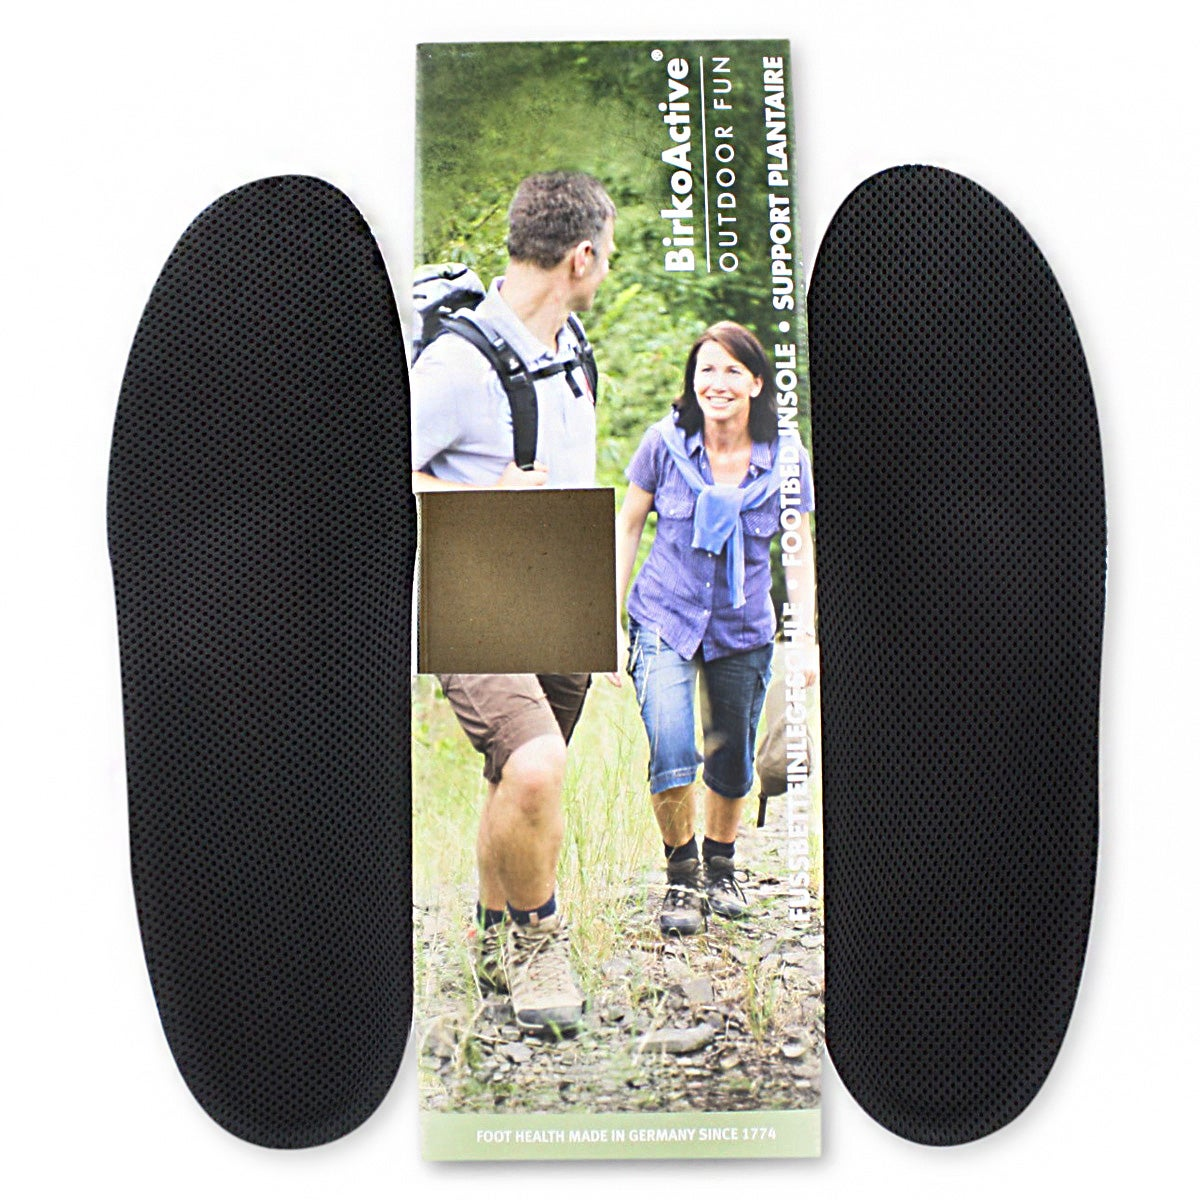 Semelles assises plantaires OUTDOOR FUN, hommes